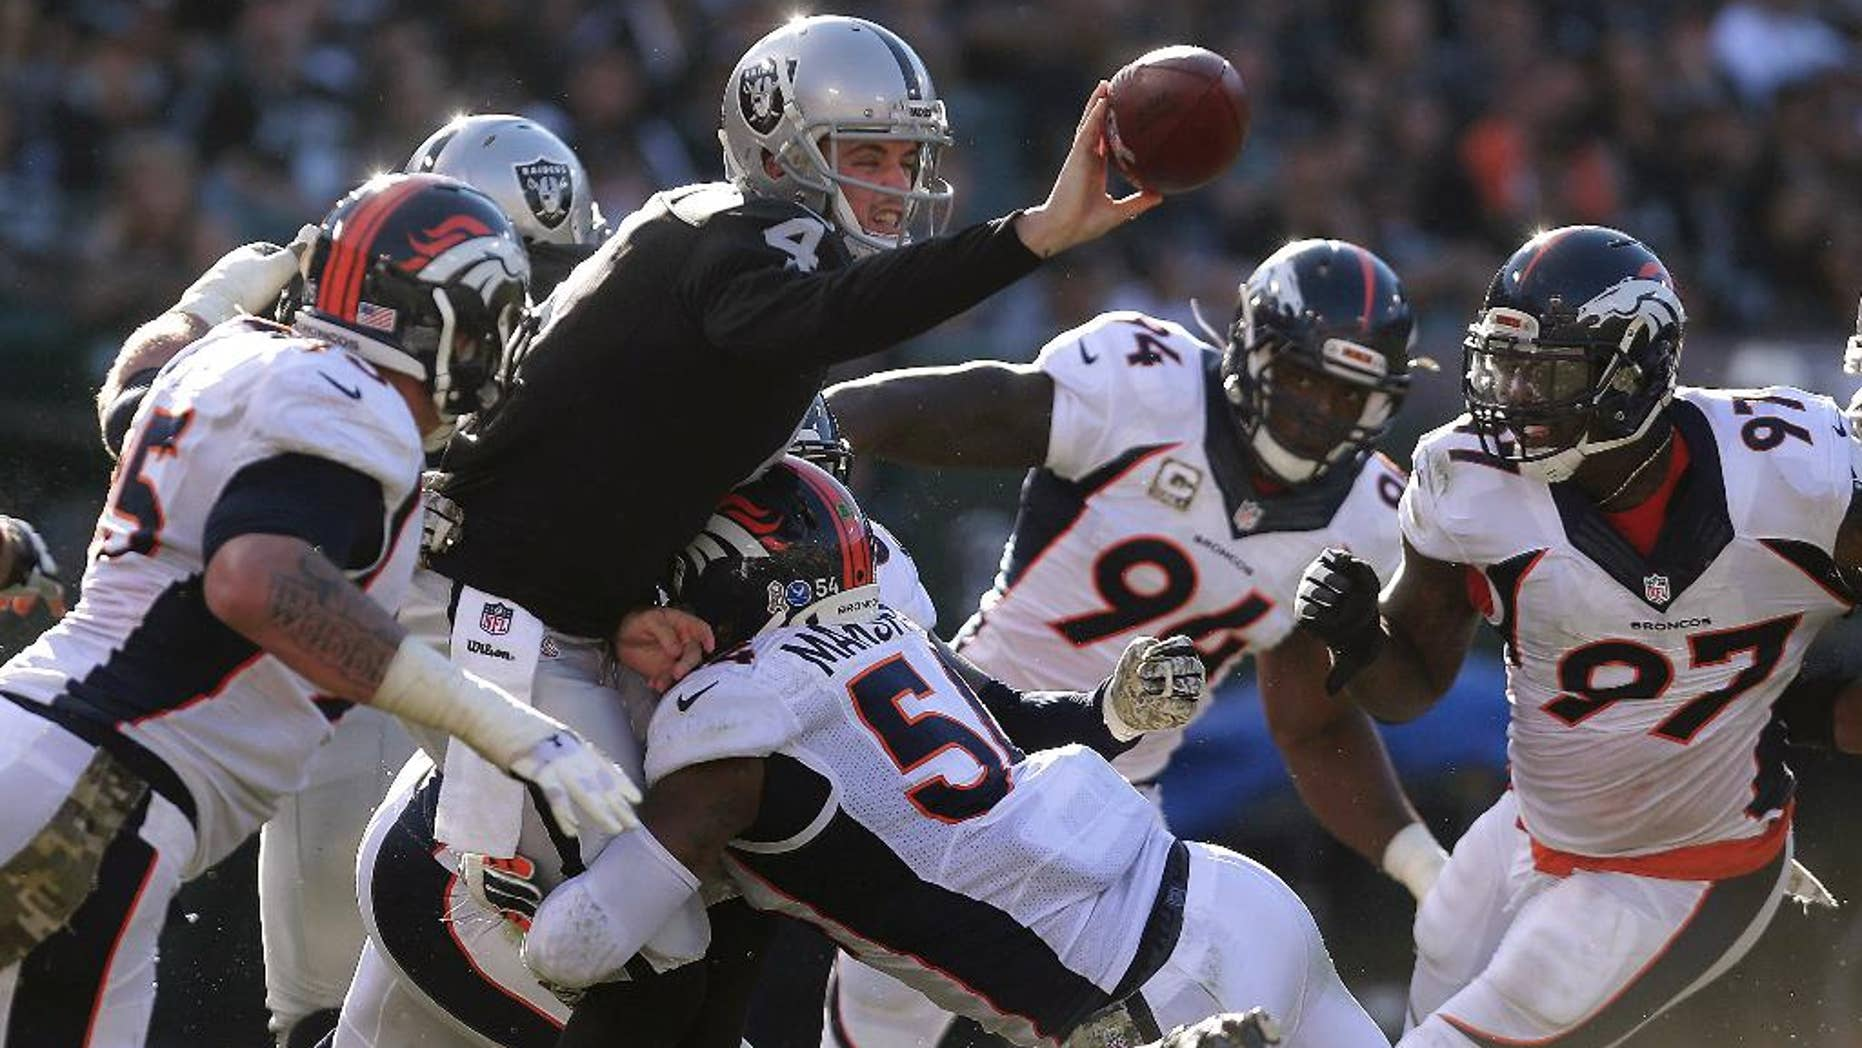 Oakland Raiders quarterback Derek Carr (4) gets rid of the ball as he is pressured by Denver Broncos linebacker Brandon Marshall (54) during the third quarter of an NFL football game in Oakland, Calif., Sunday, Nov. 9, 2014. Carr threw the ball to offensive tackle Khalif Barnes, who fumbled; the ball was recovered by Broncos cornerback Chris Harris. (AP Photo/Marcio Jose Sanchez)